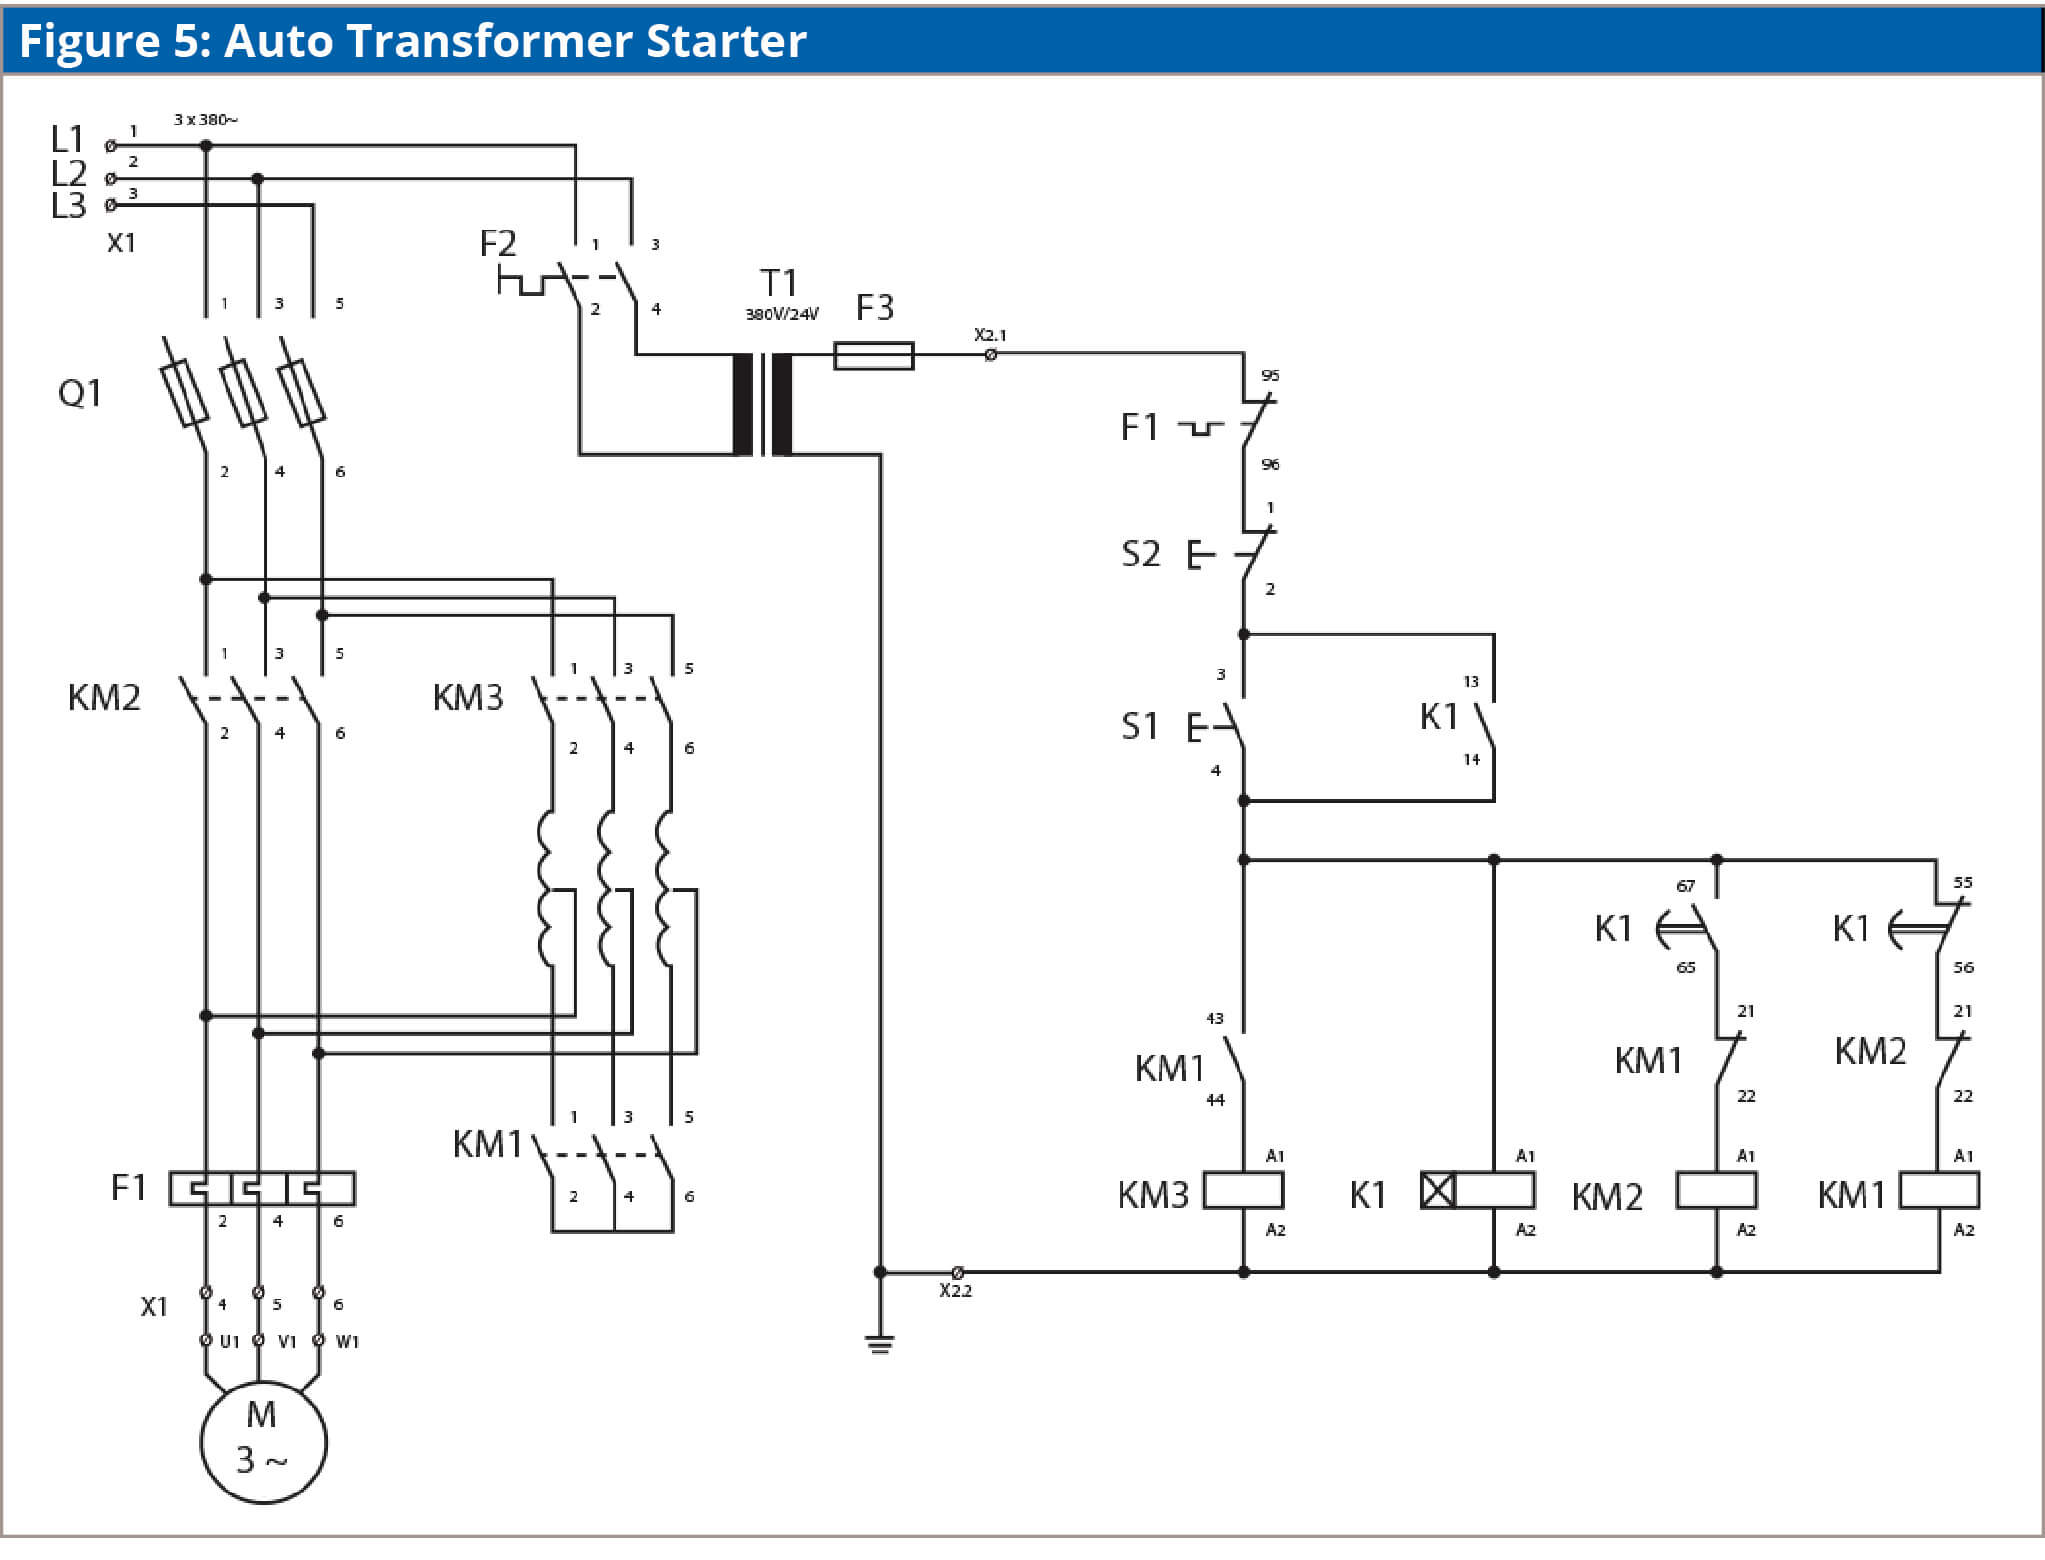 Dc Motor 8 Lead Wiring Diagram From Starter With 3 Wirrs from img.c3controls.com